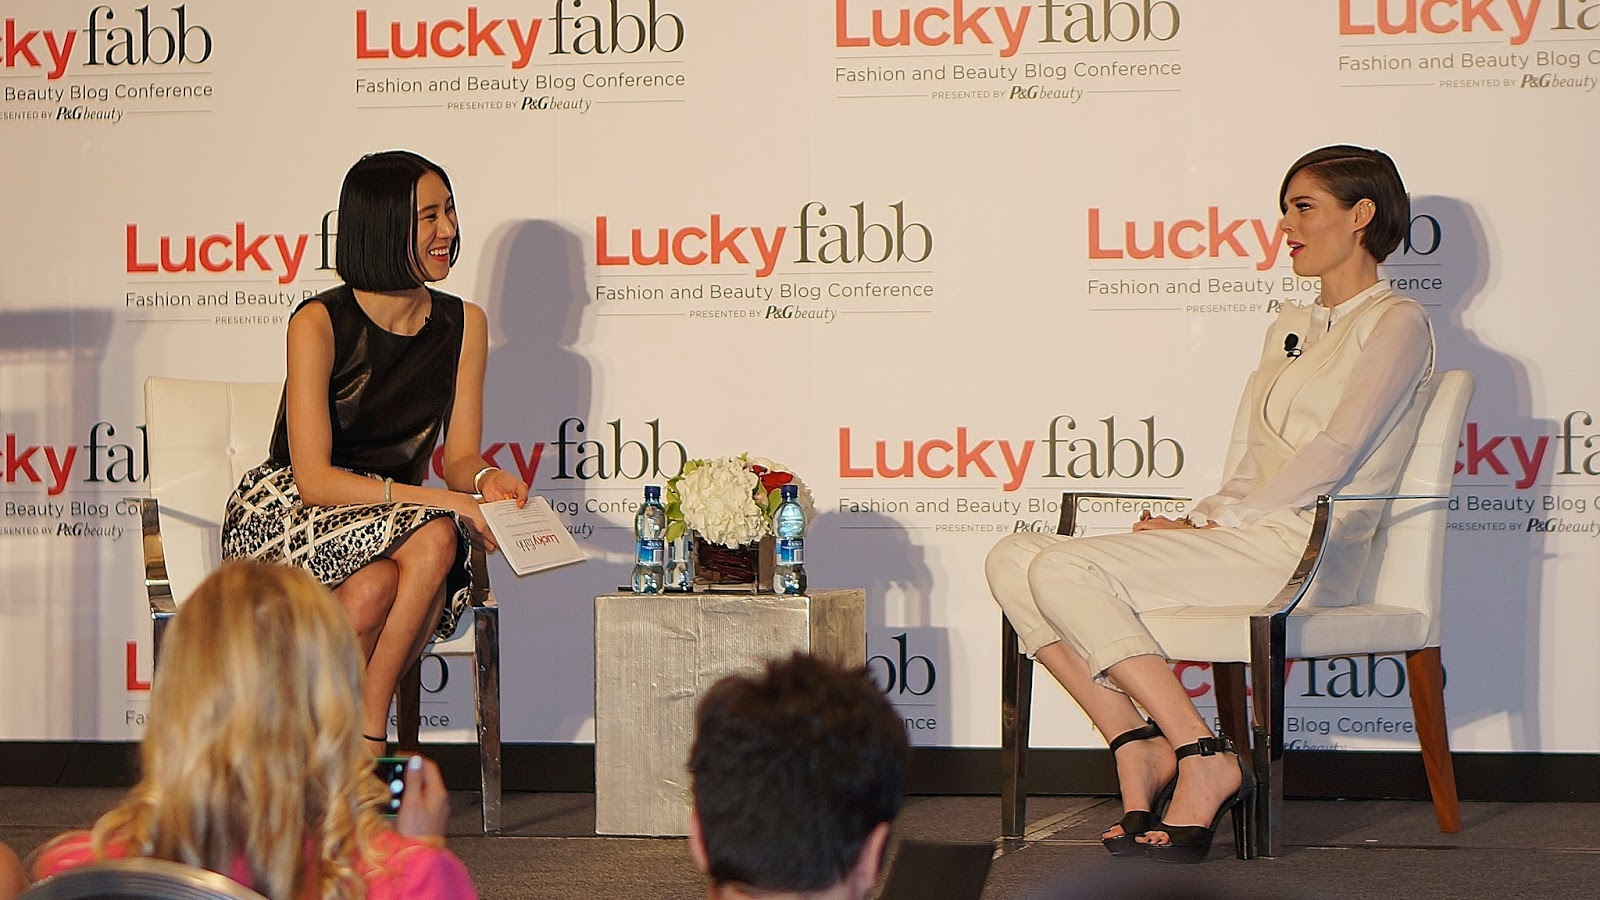 Lucky Fabb, Lucky Fabb 2014, Lucky Fabb West, Lucky Fabb L.A., Lucky Fabb Fashion and Beauty Blog Conference, Lucky Magazine Event, Fashion Blogger, Coco Rocha